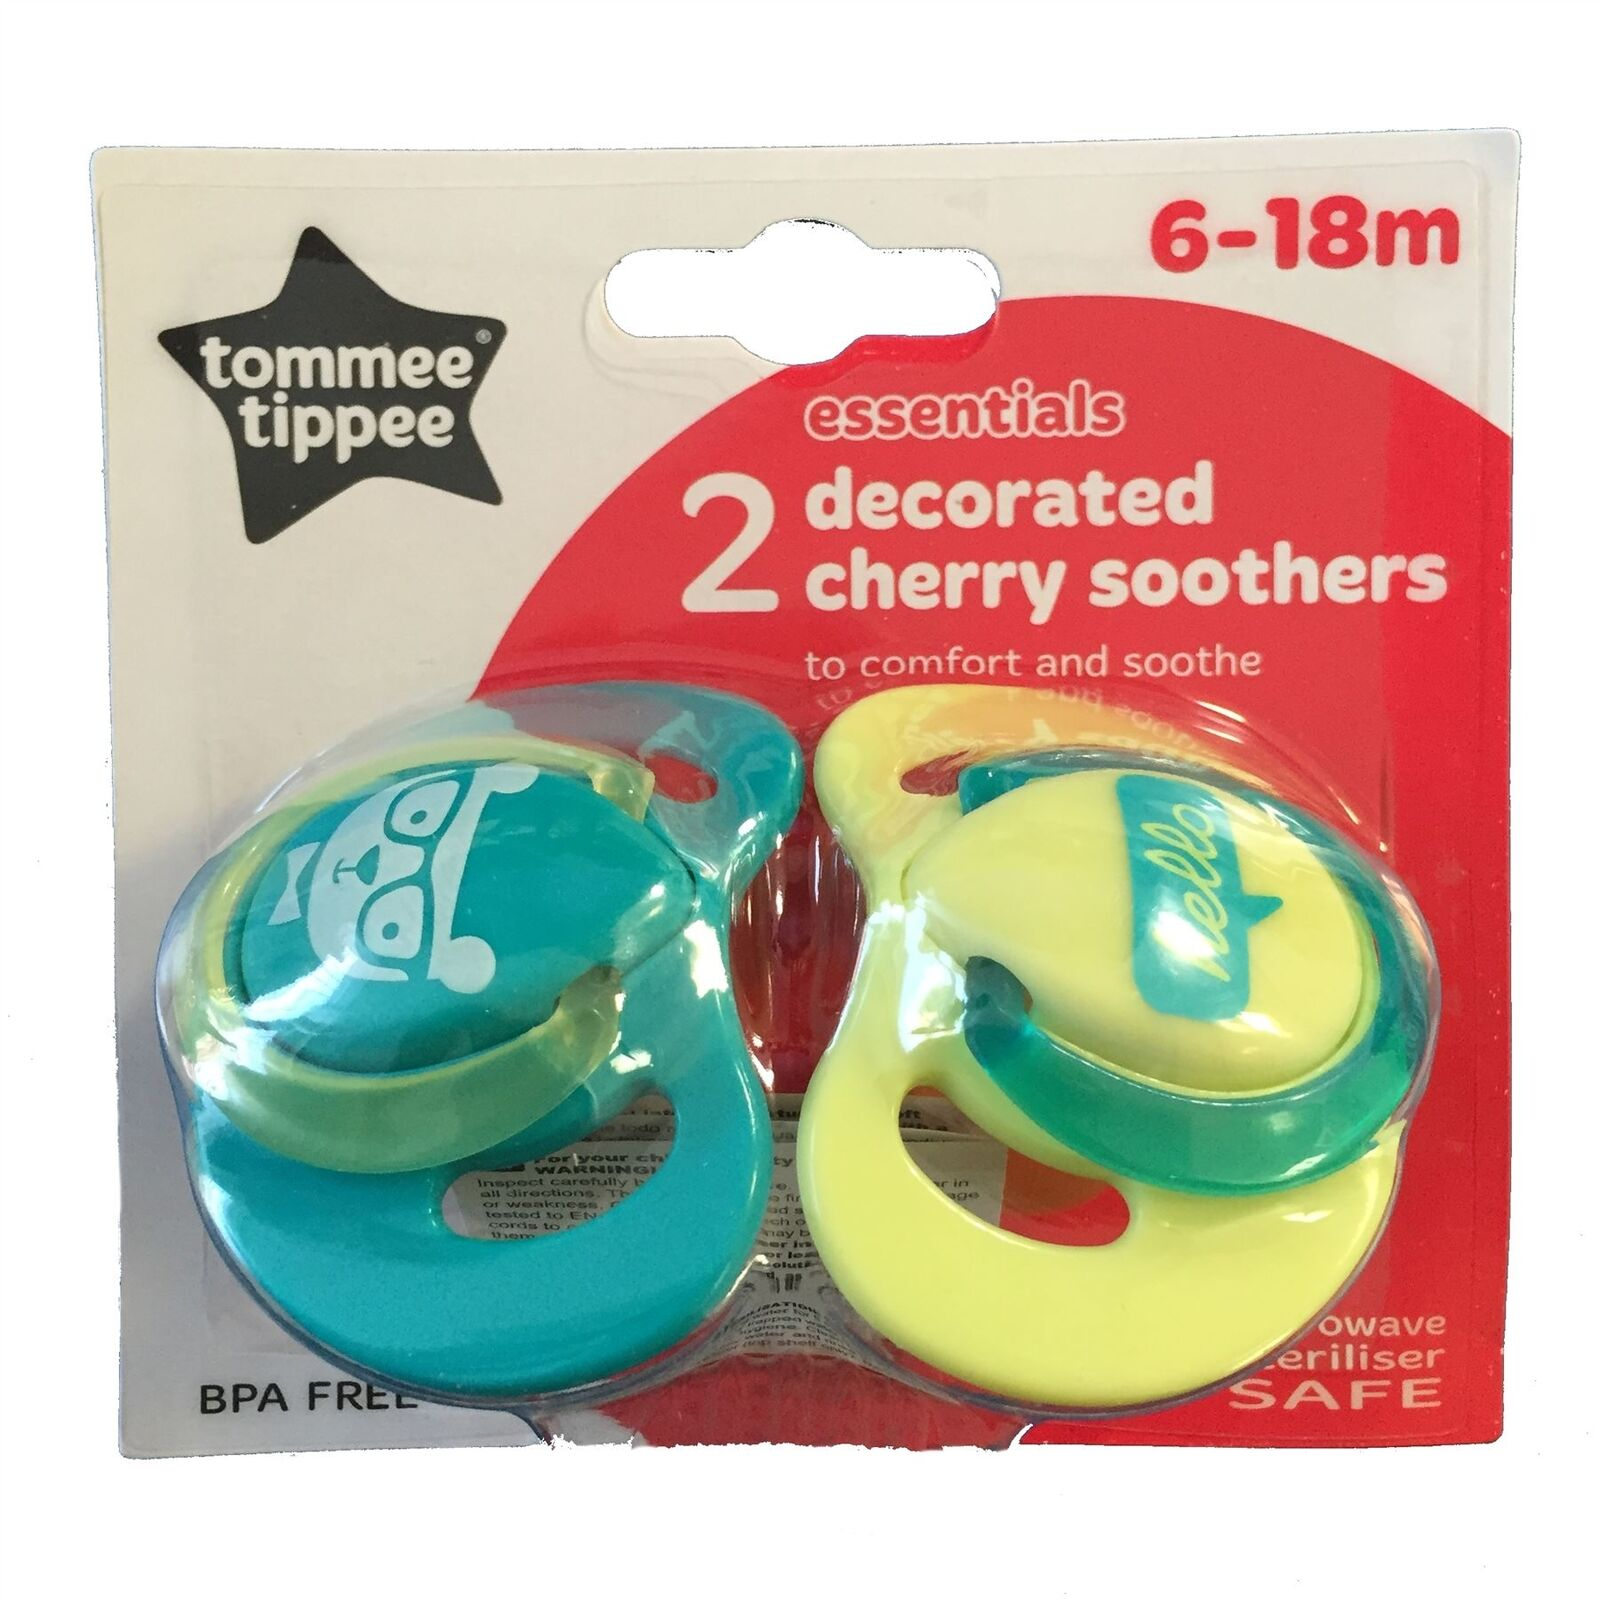 Tommee Tippee Essential Basics Decorated Cherry Soothers 6-18 months 2-pack Assorted Colors